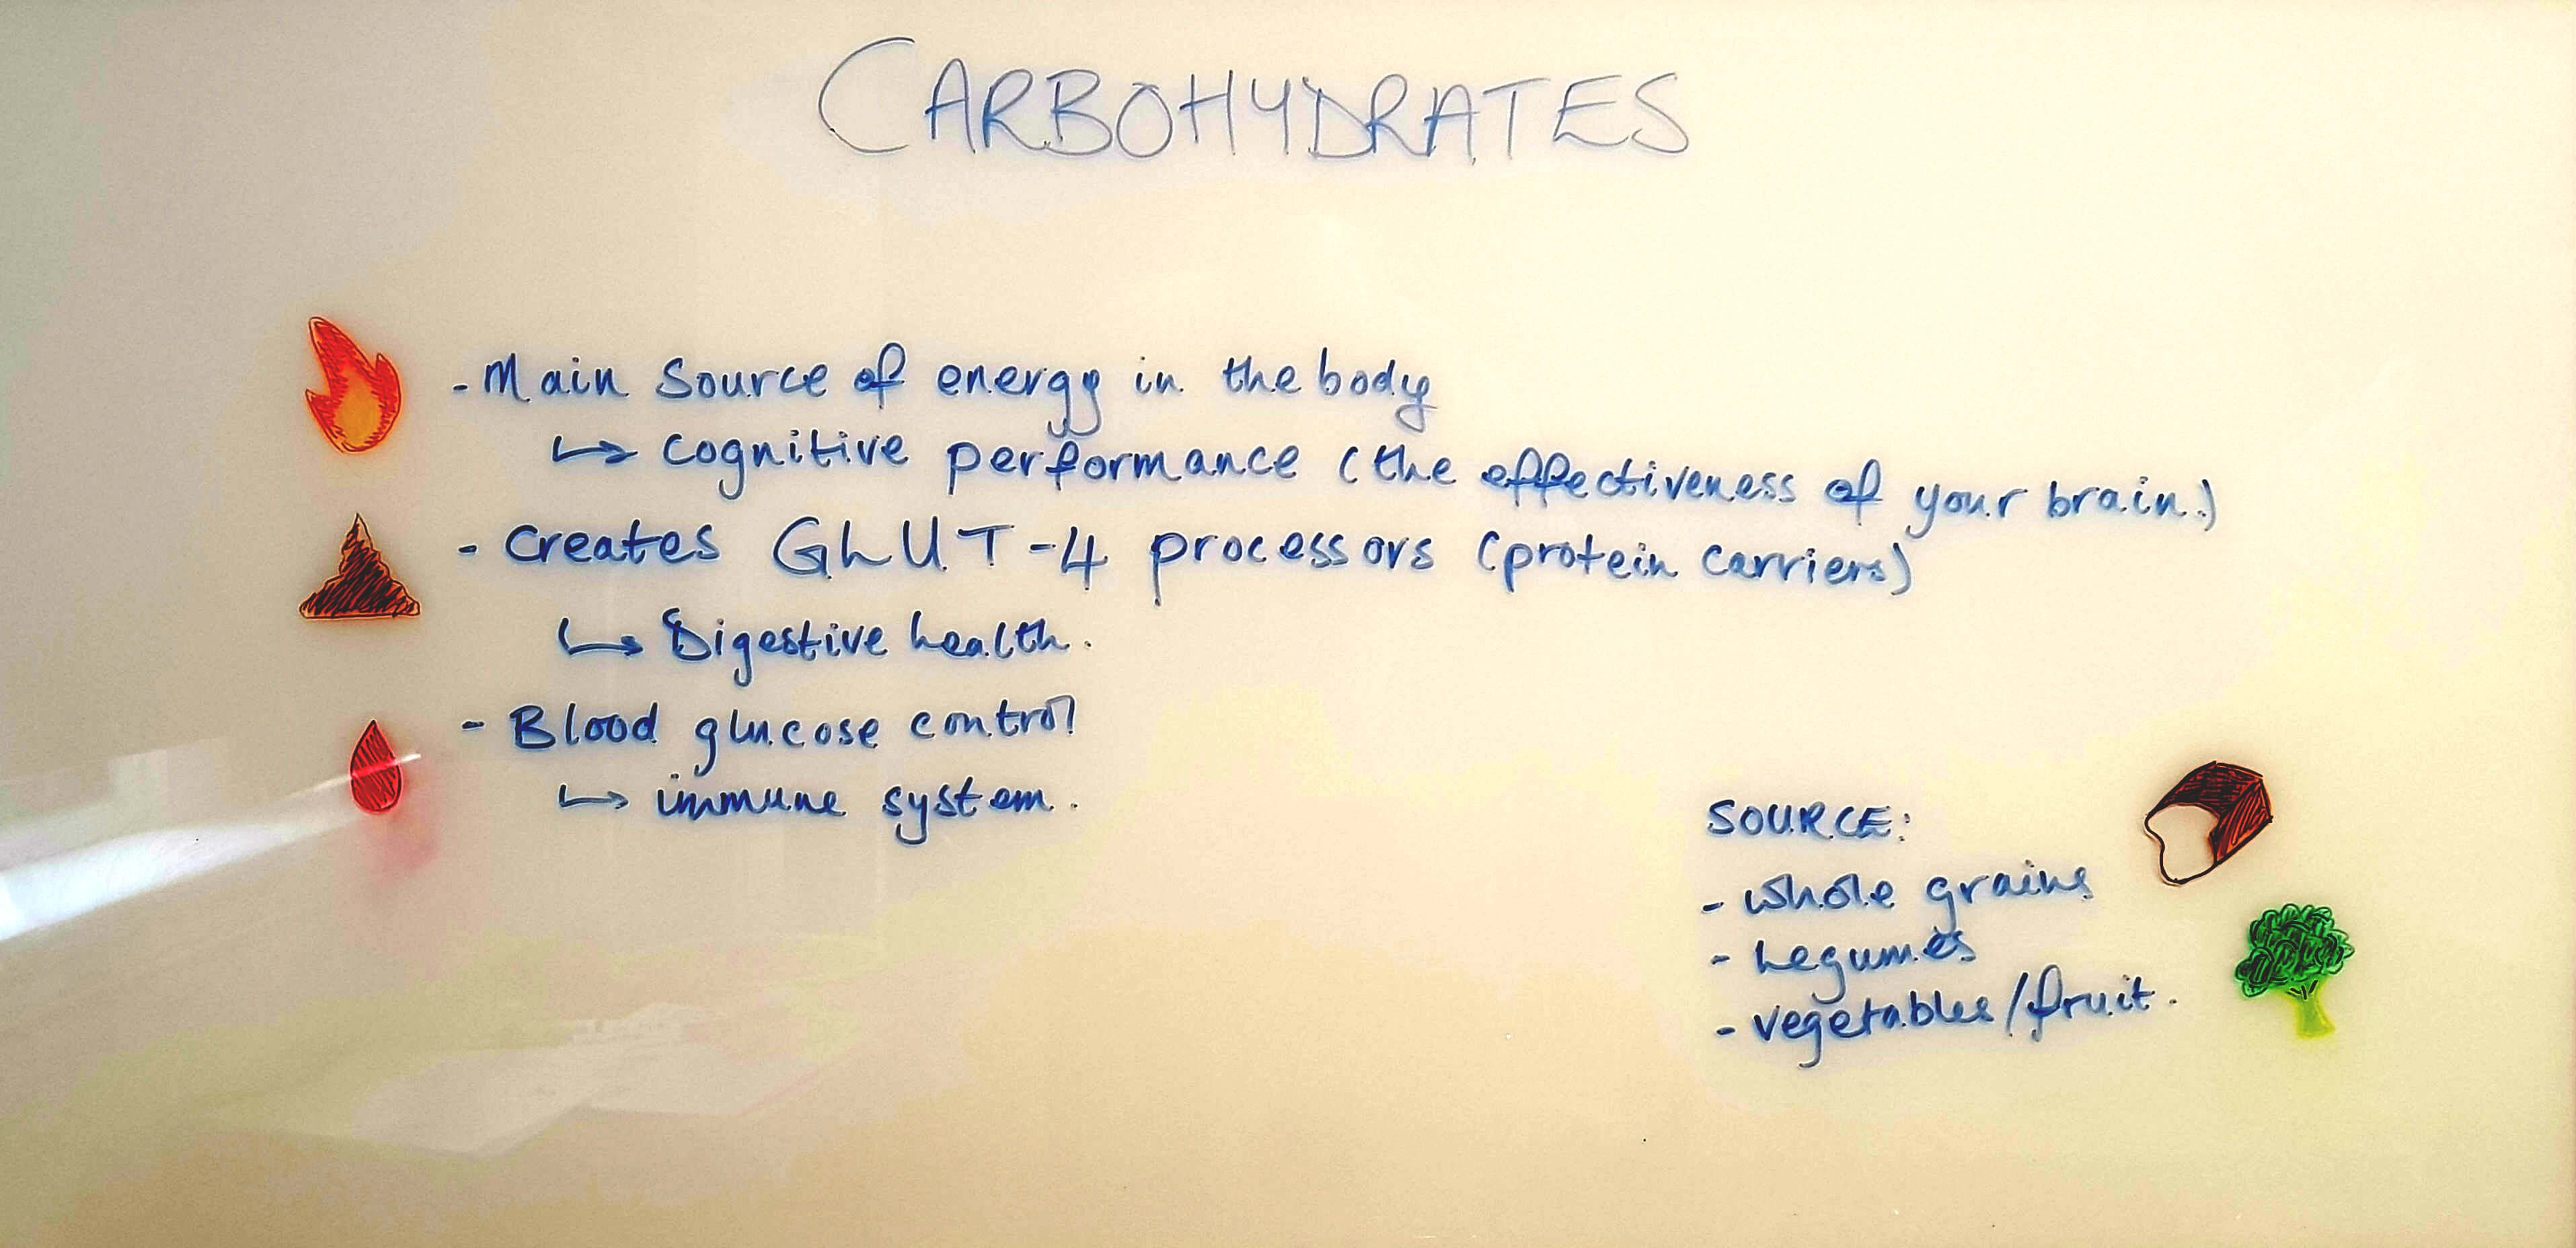 Carbohydrates are the main source of energy in the body and creates glut - 4